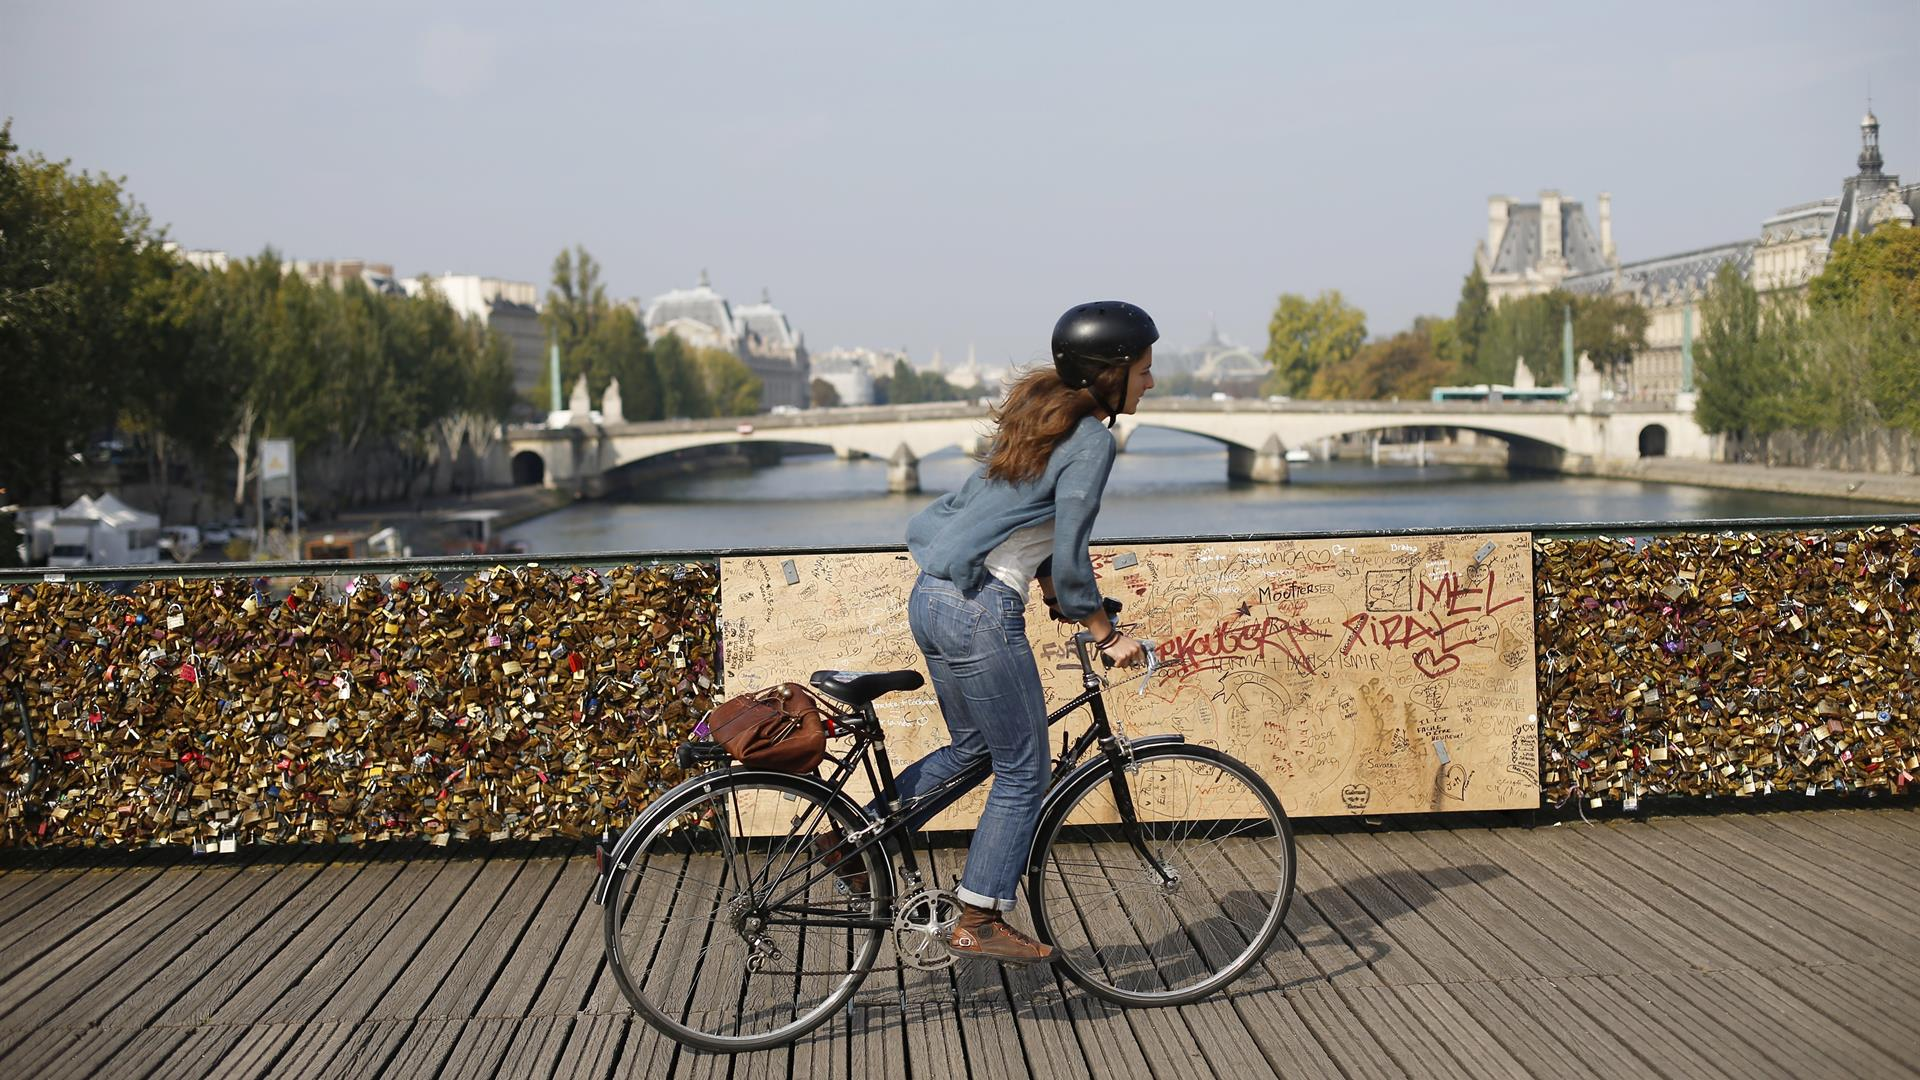 Bici Parigi THOMAS SAMSON:AFP:Getty Images